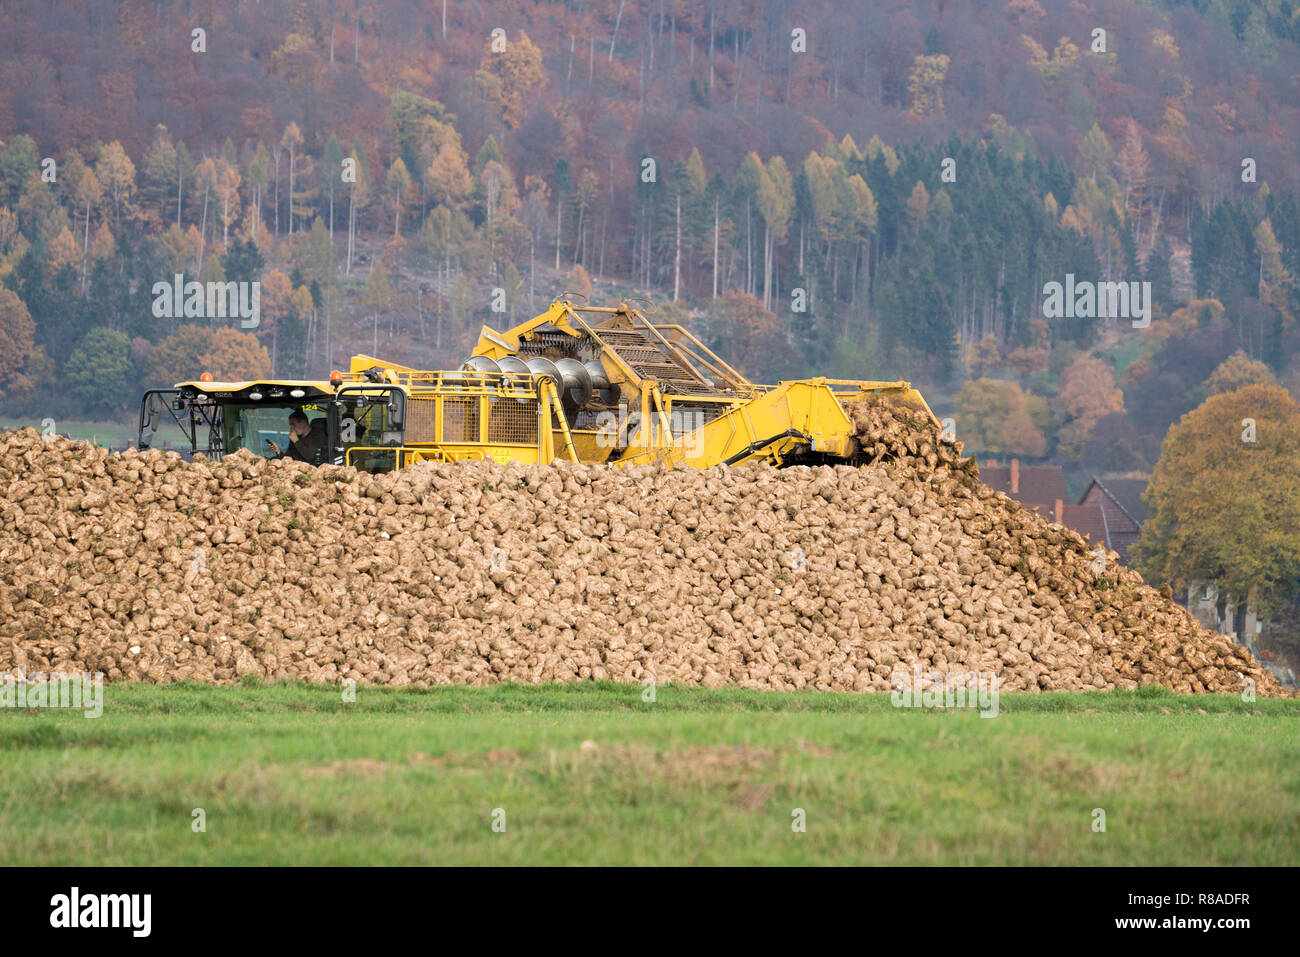 A Sugarbeet harvester, near Oberweser, Upper Weser Valley,  Weser Uplands, Weserbergland, Hesse, Germany Stock Photo